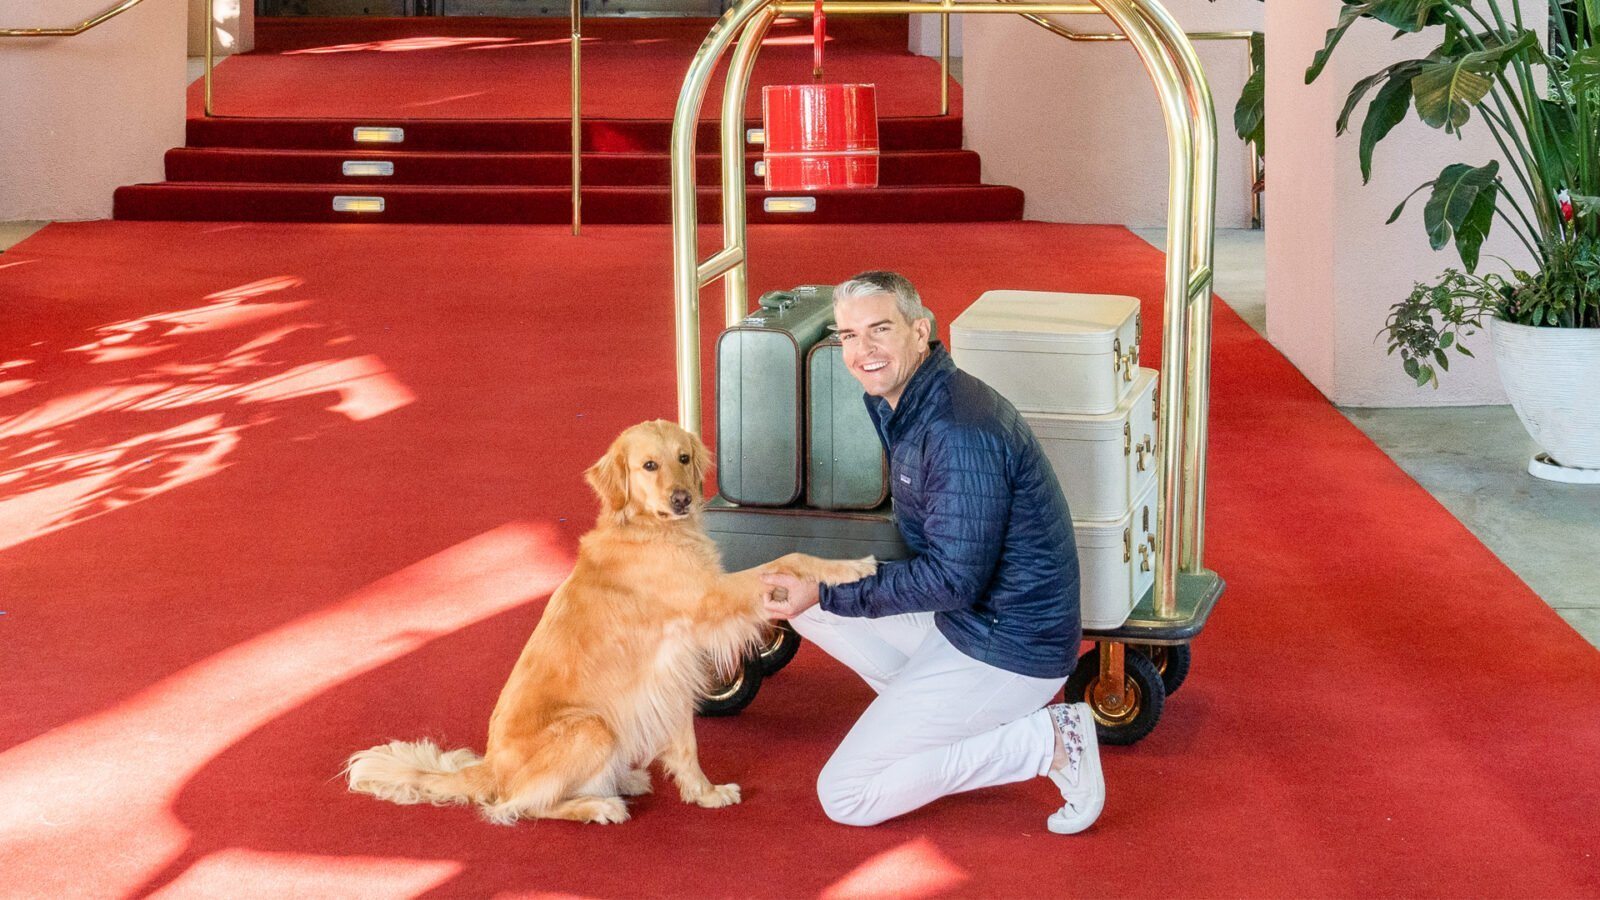 Gray Malin poses with pooch on red carpet